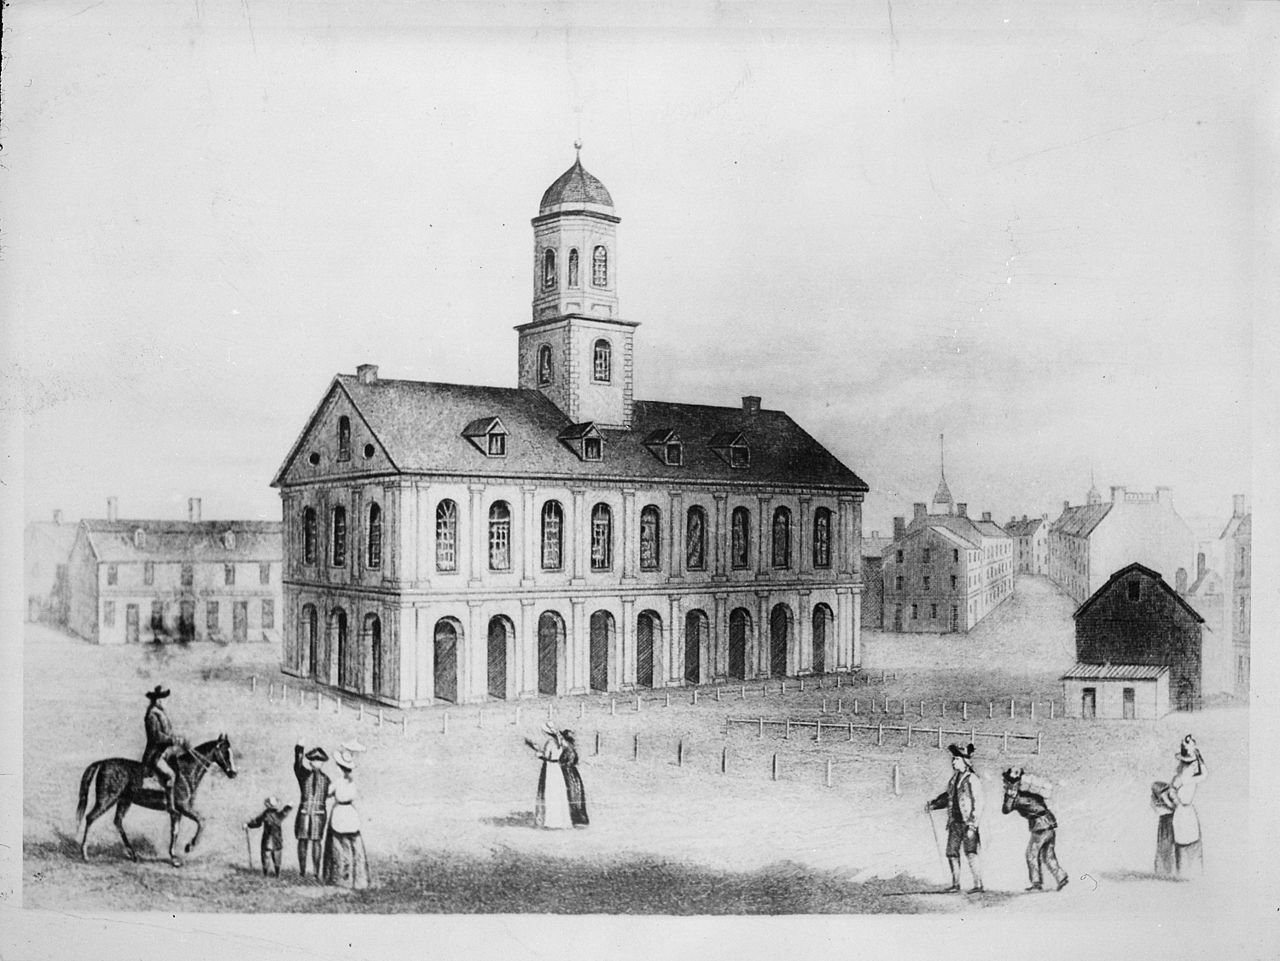 Illustration of Faneuil Hall as it appeared in the 1790s.